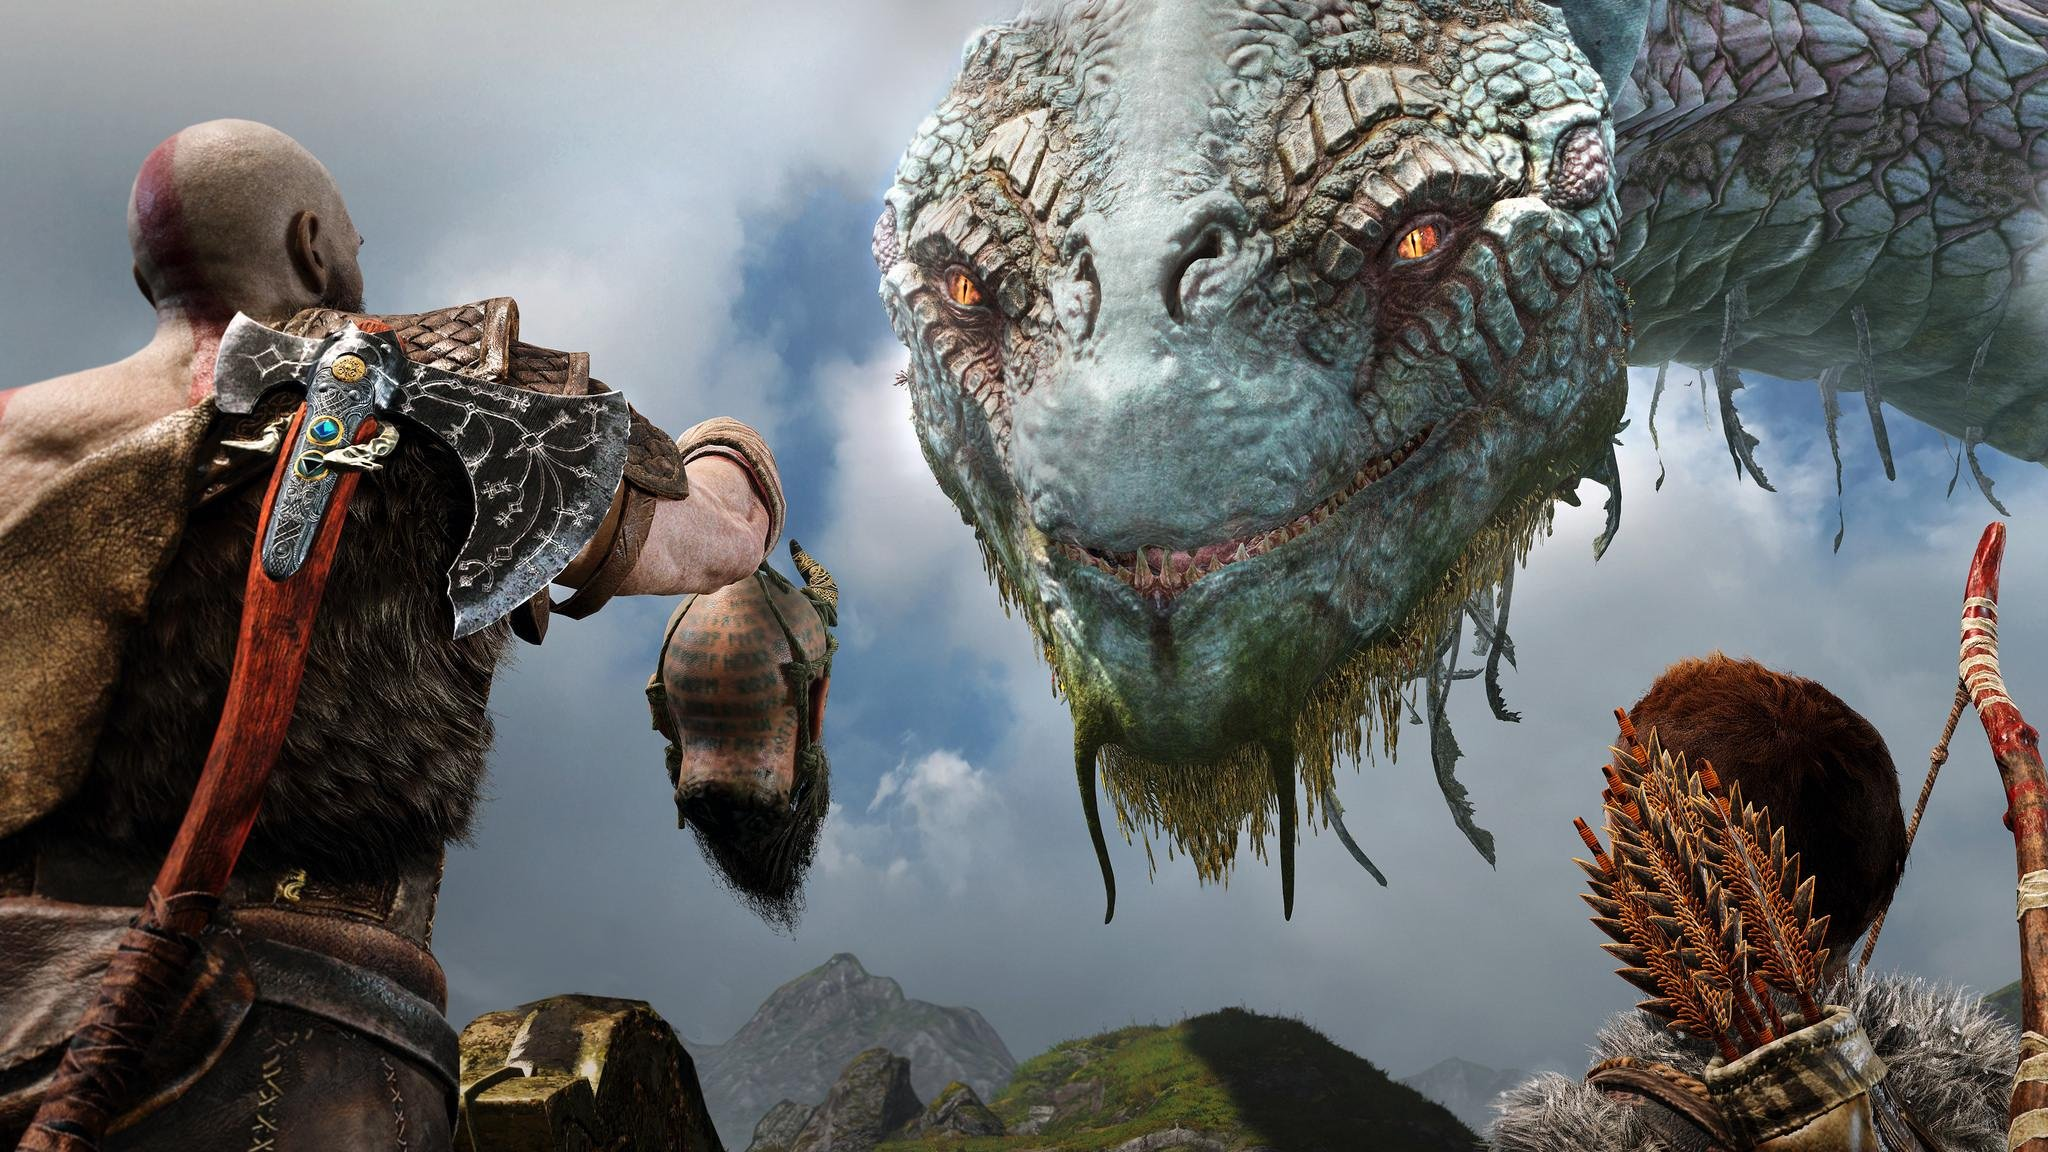 God of War Patch Makes Day e Alterations on PS4 Push Square